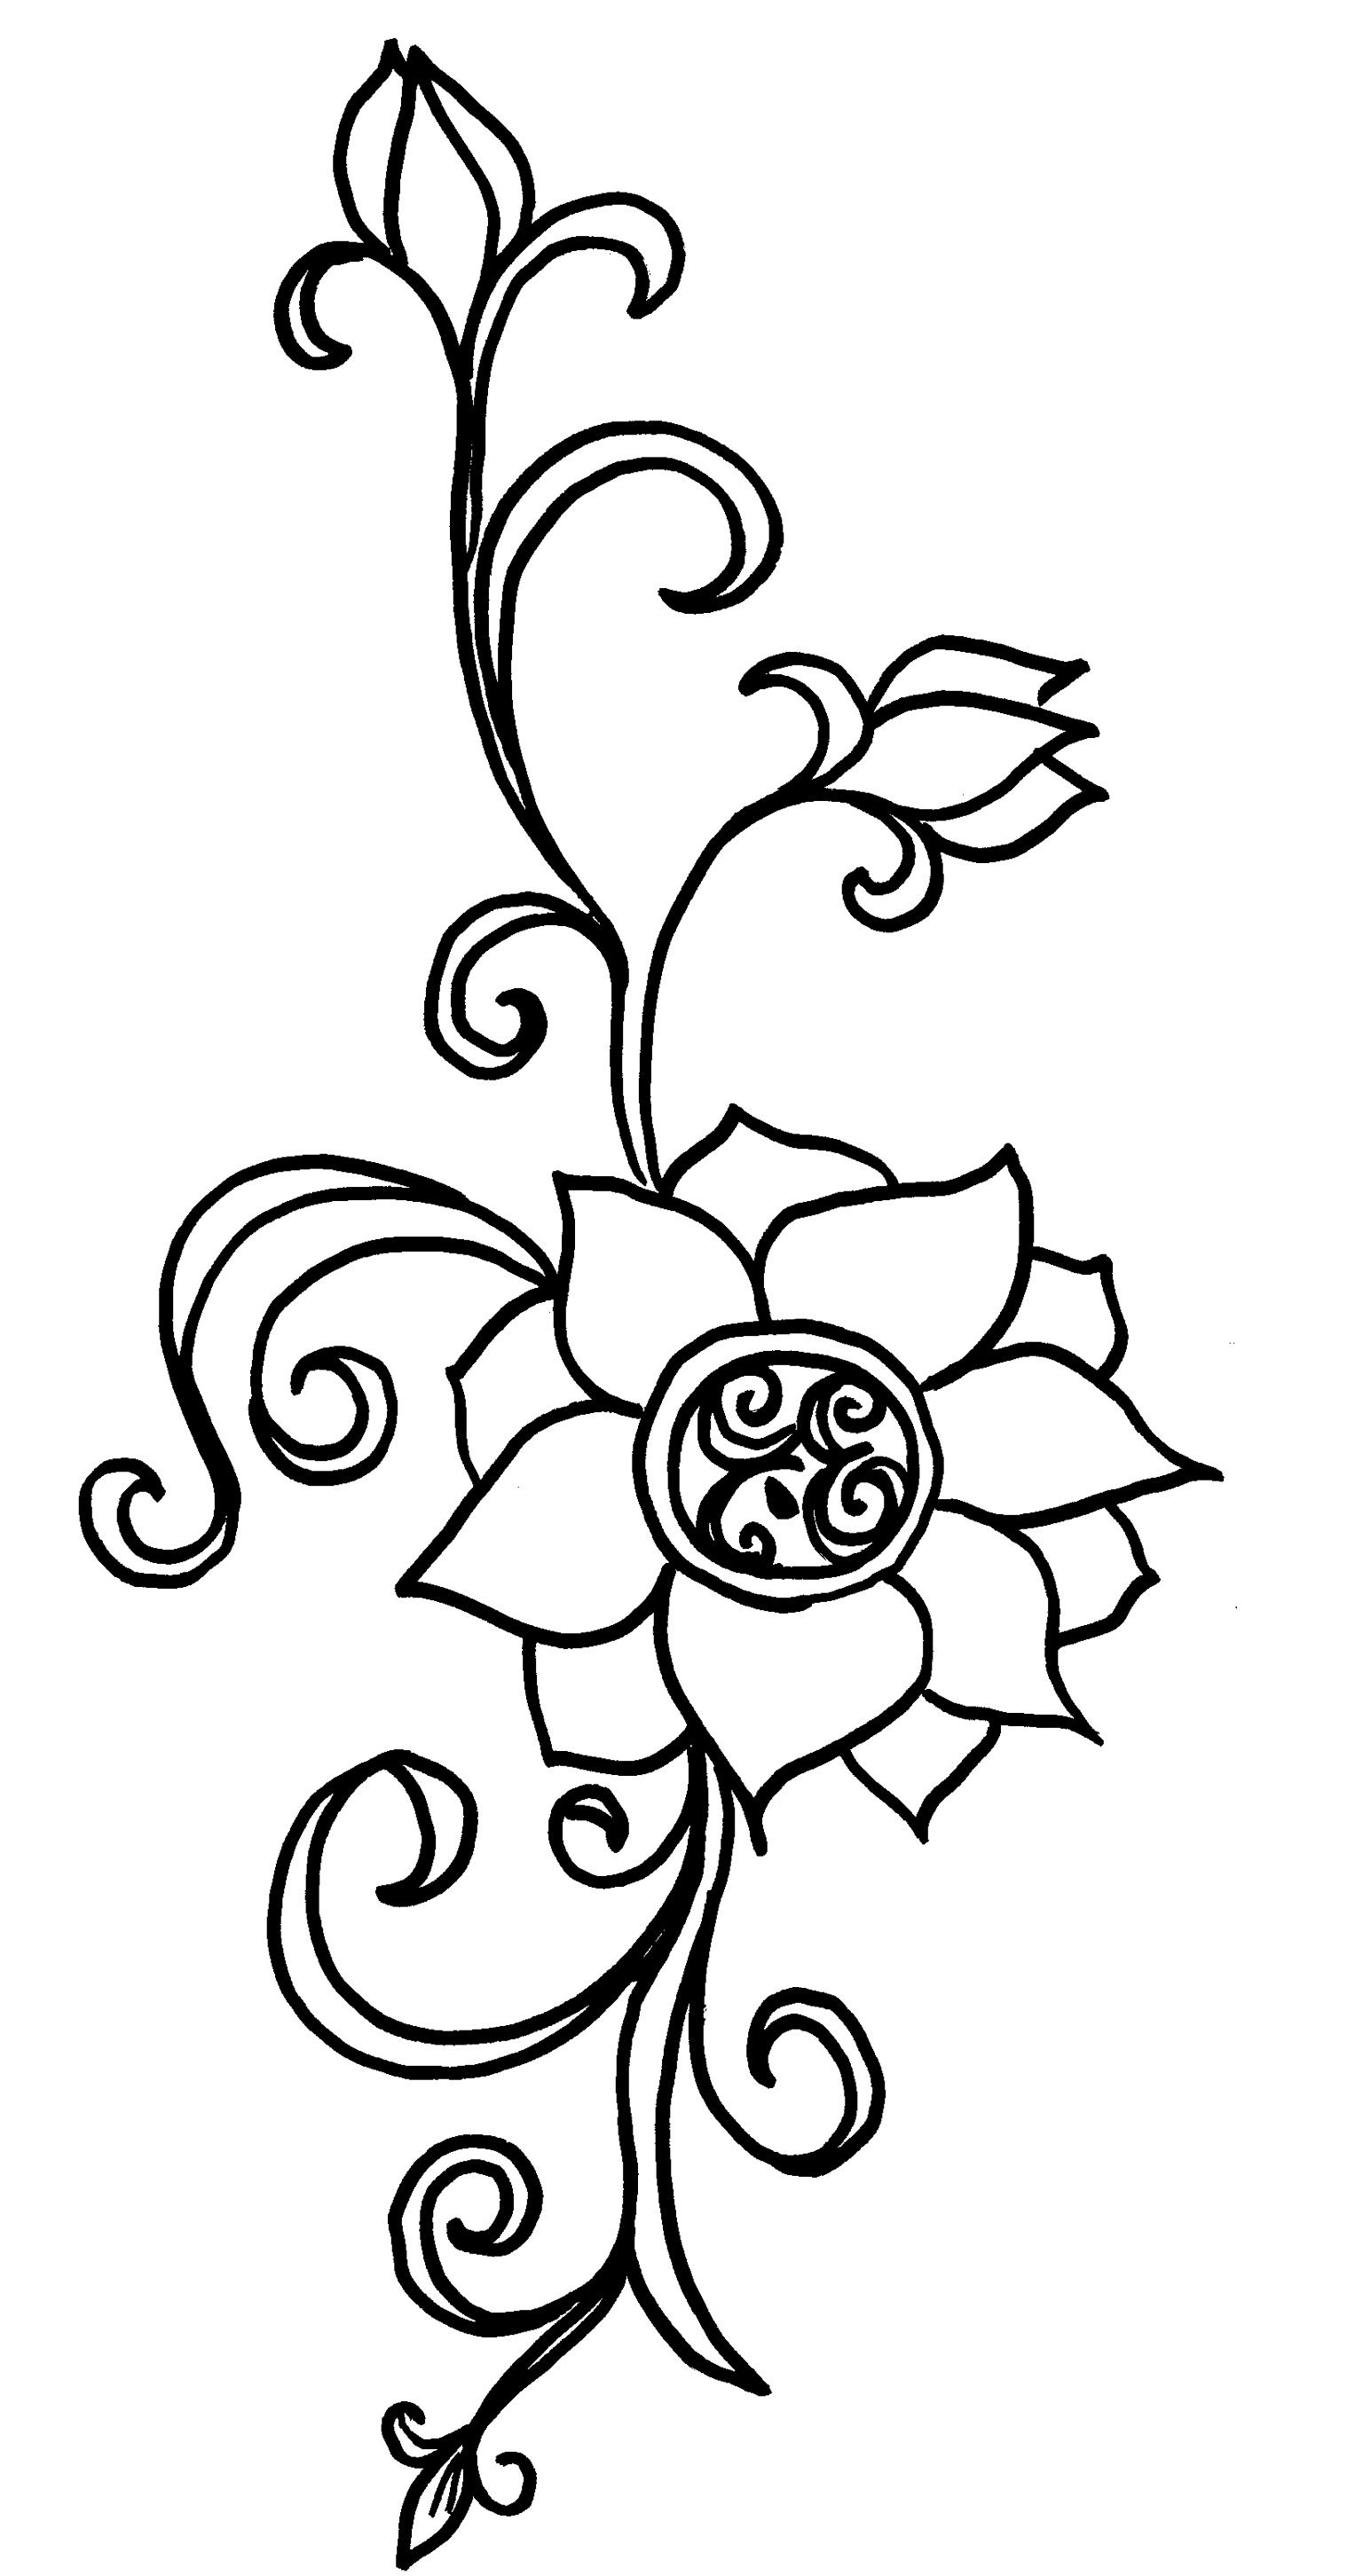 Flower drawing henna designs inspiration pinterest doodles lotus flower drawings for tattoos flower drawing izmirmasajfo